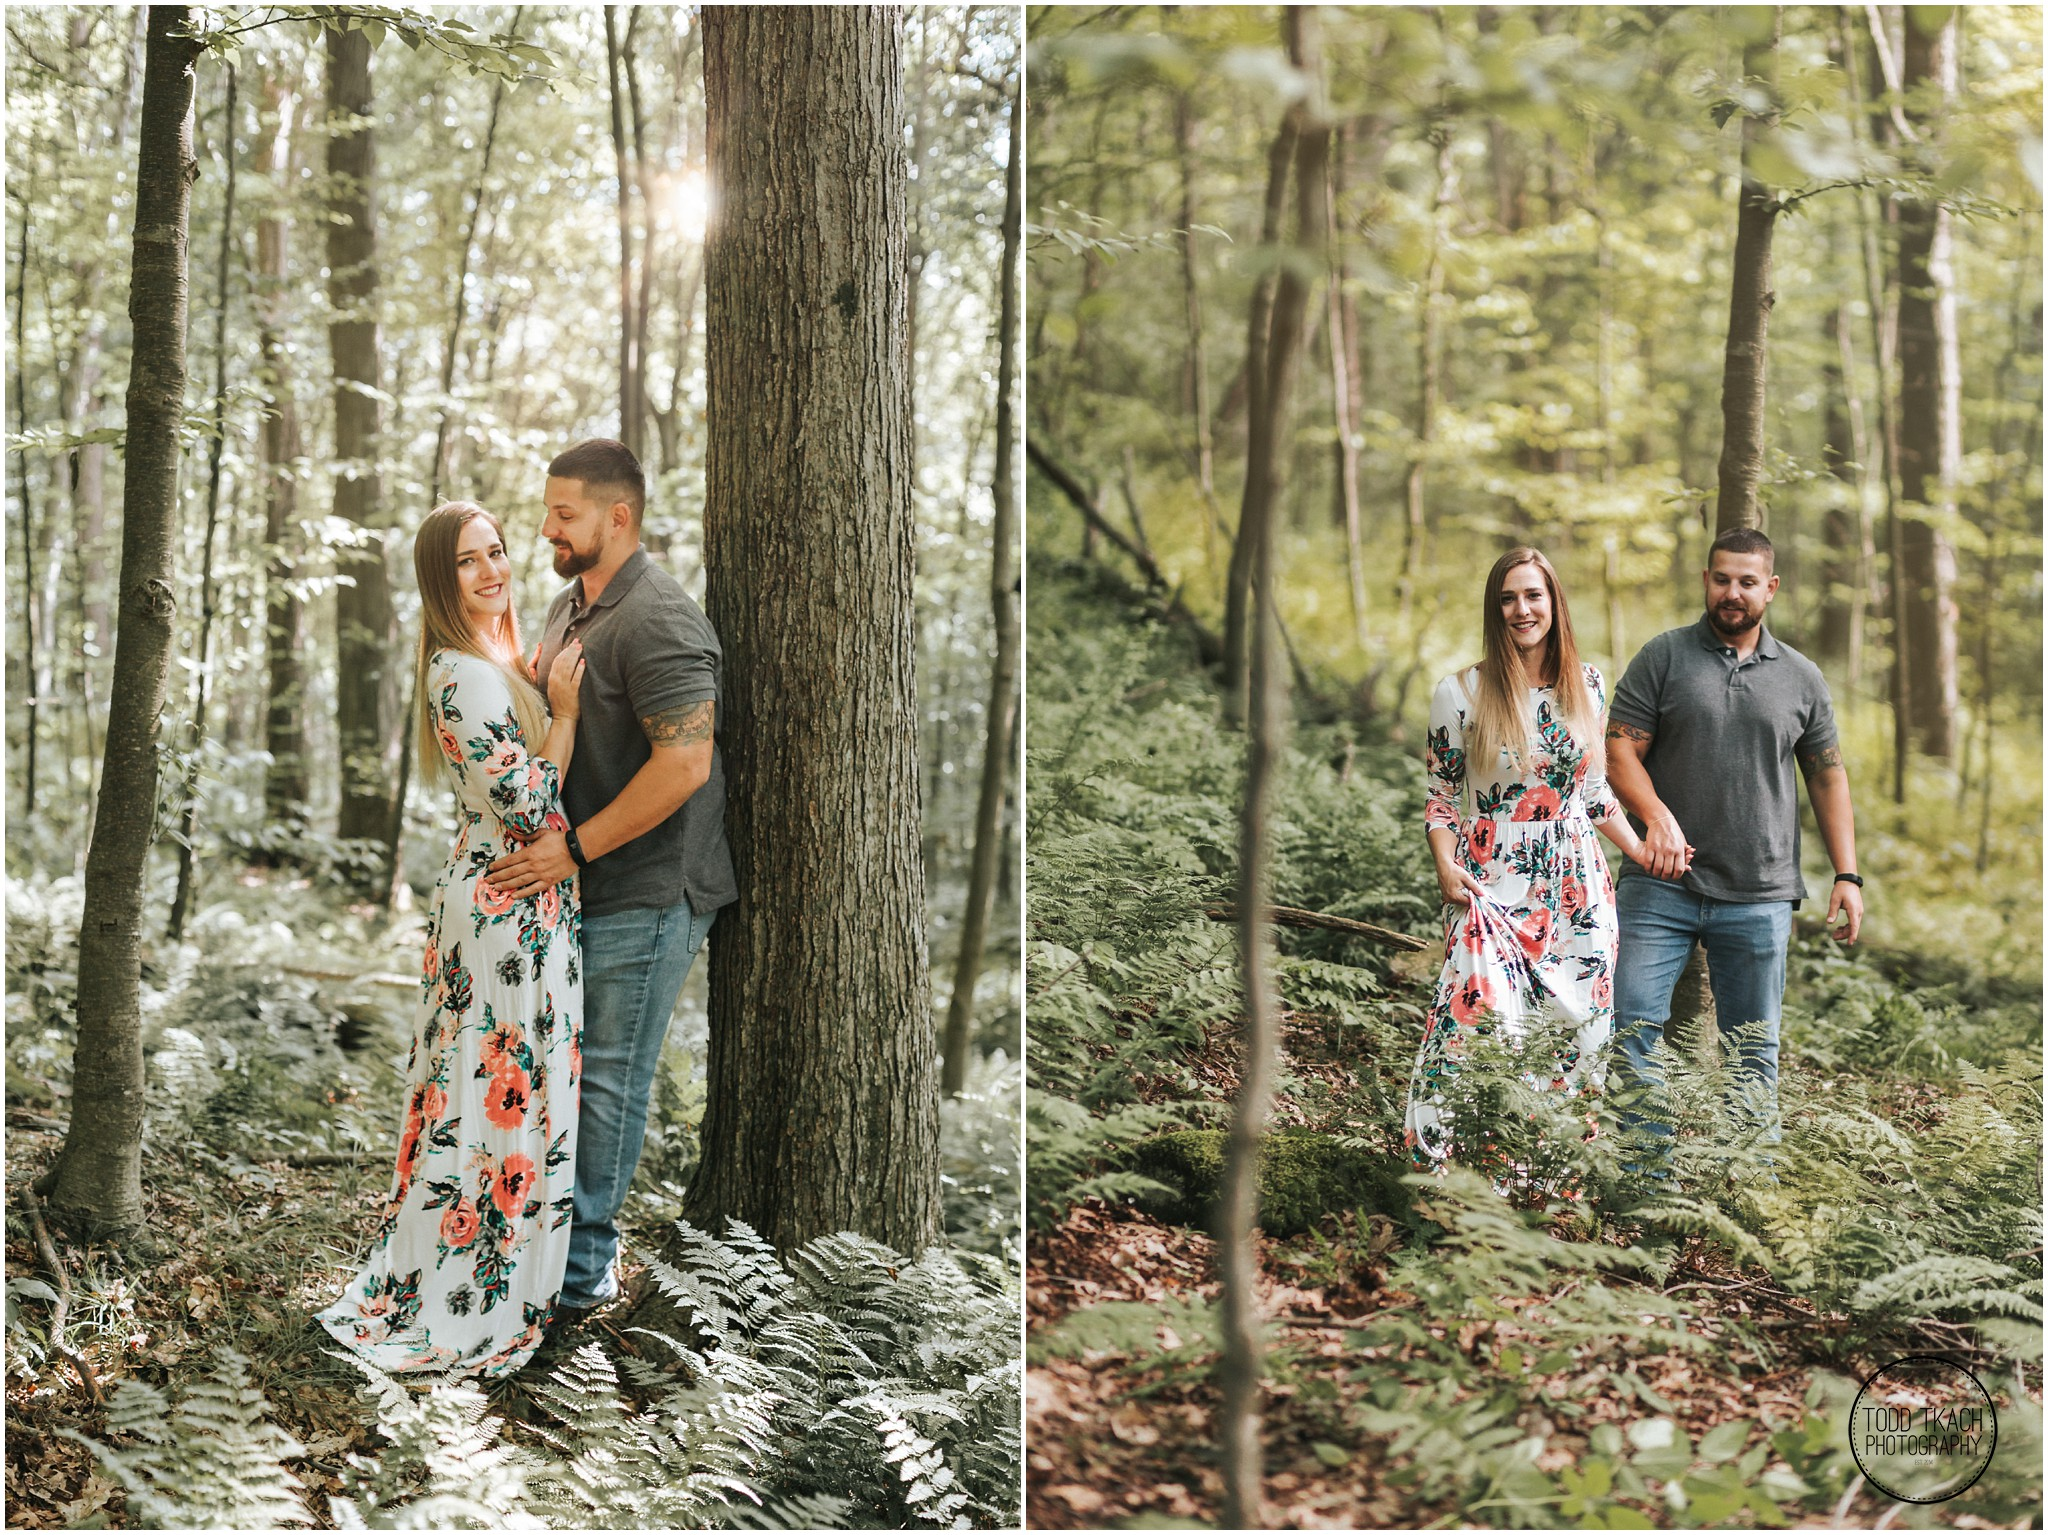 Kim & Brandon Engagement - Forest Collage